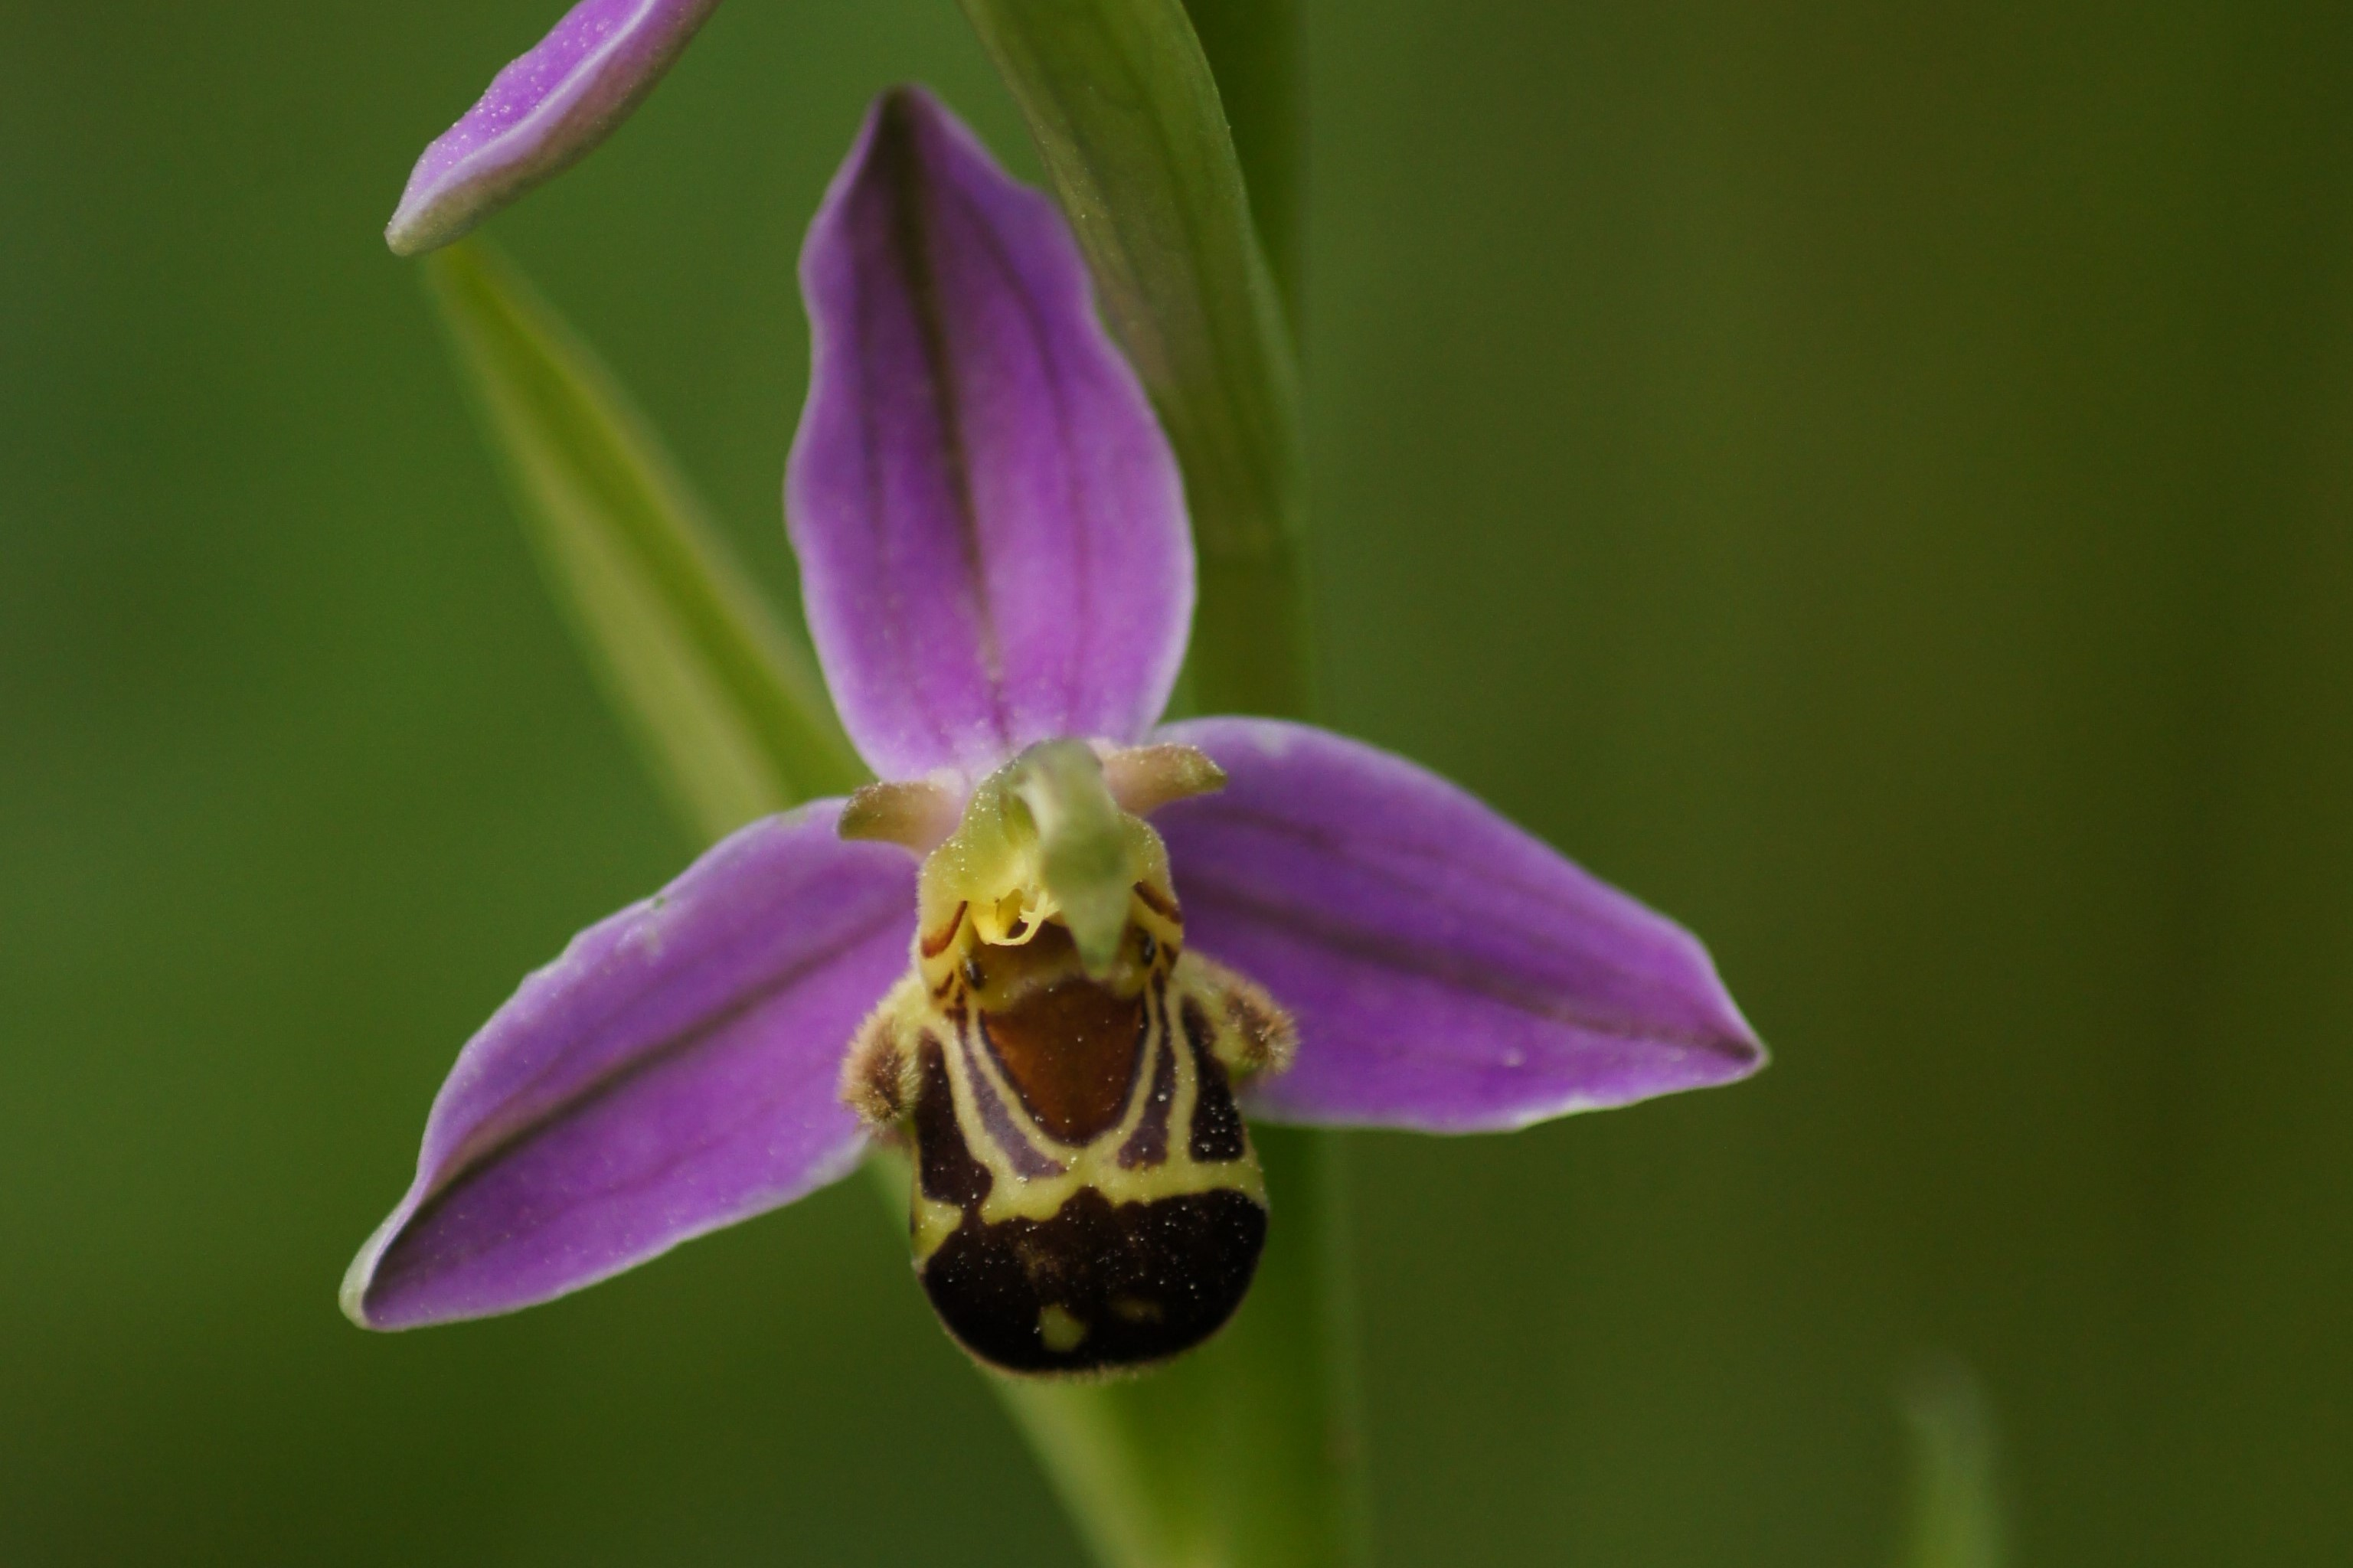 Inventaire Flore - Ophrys abeille